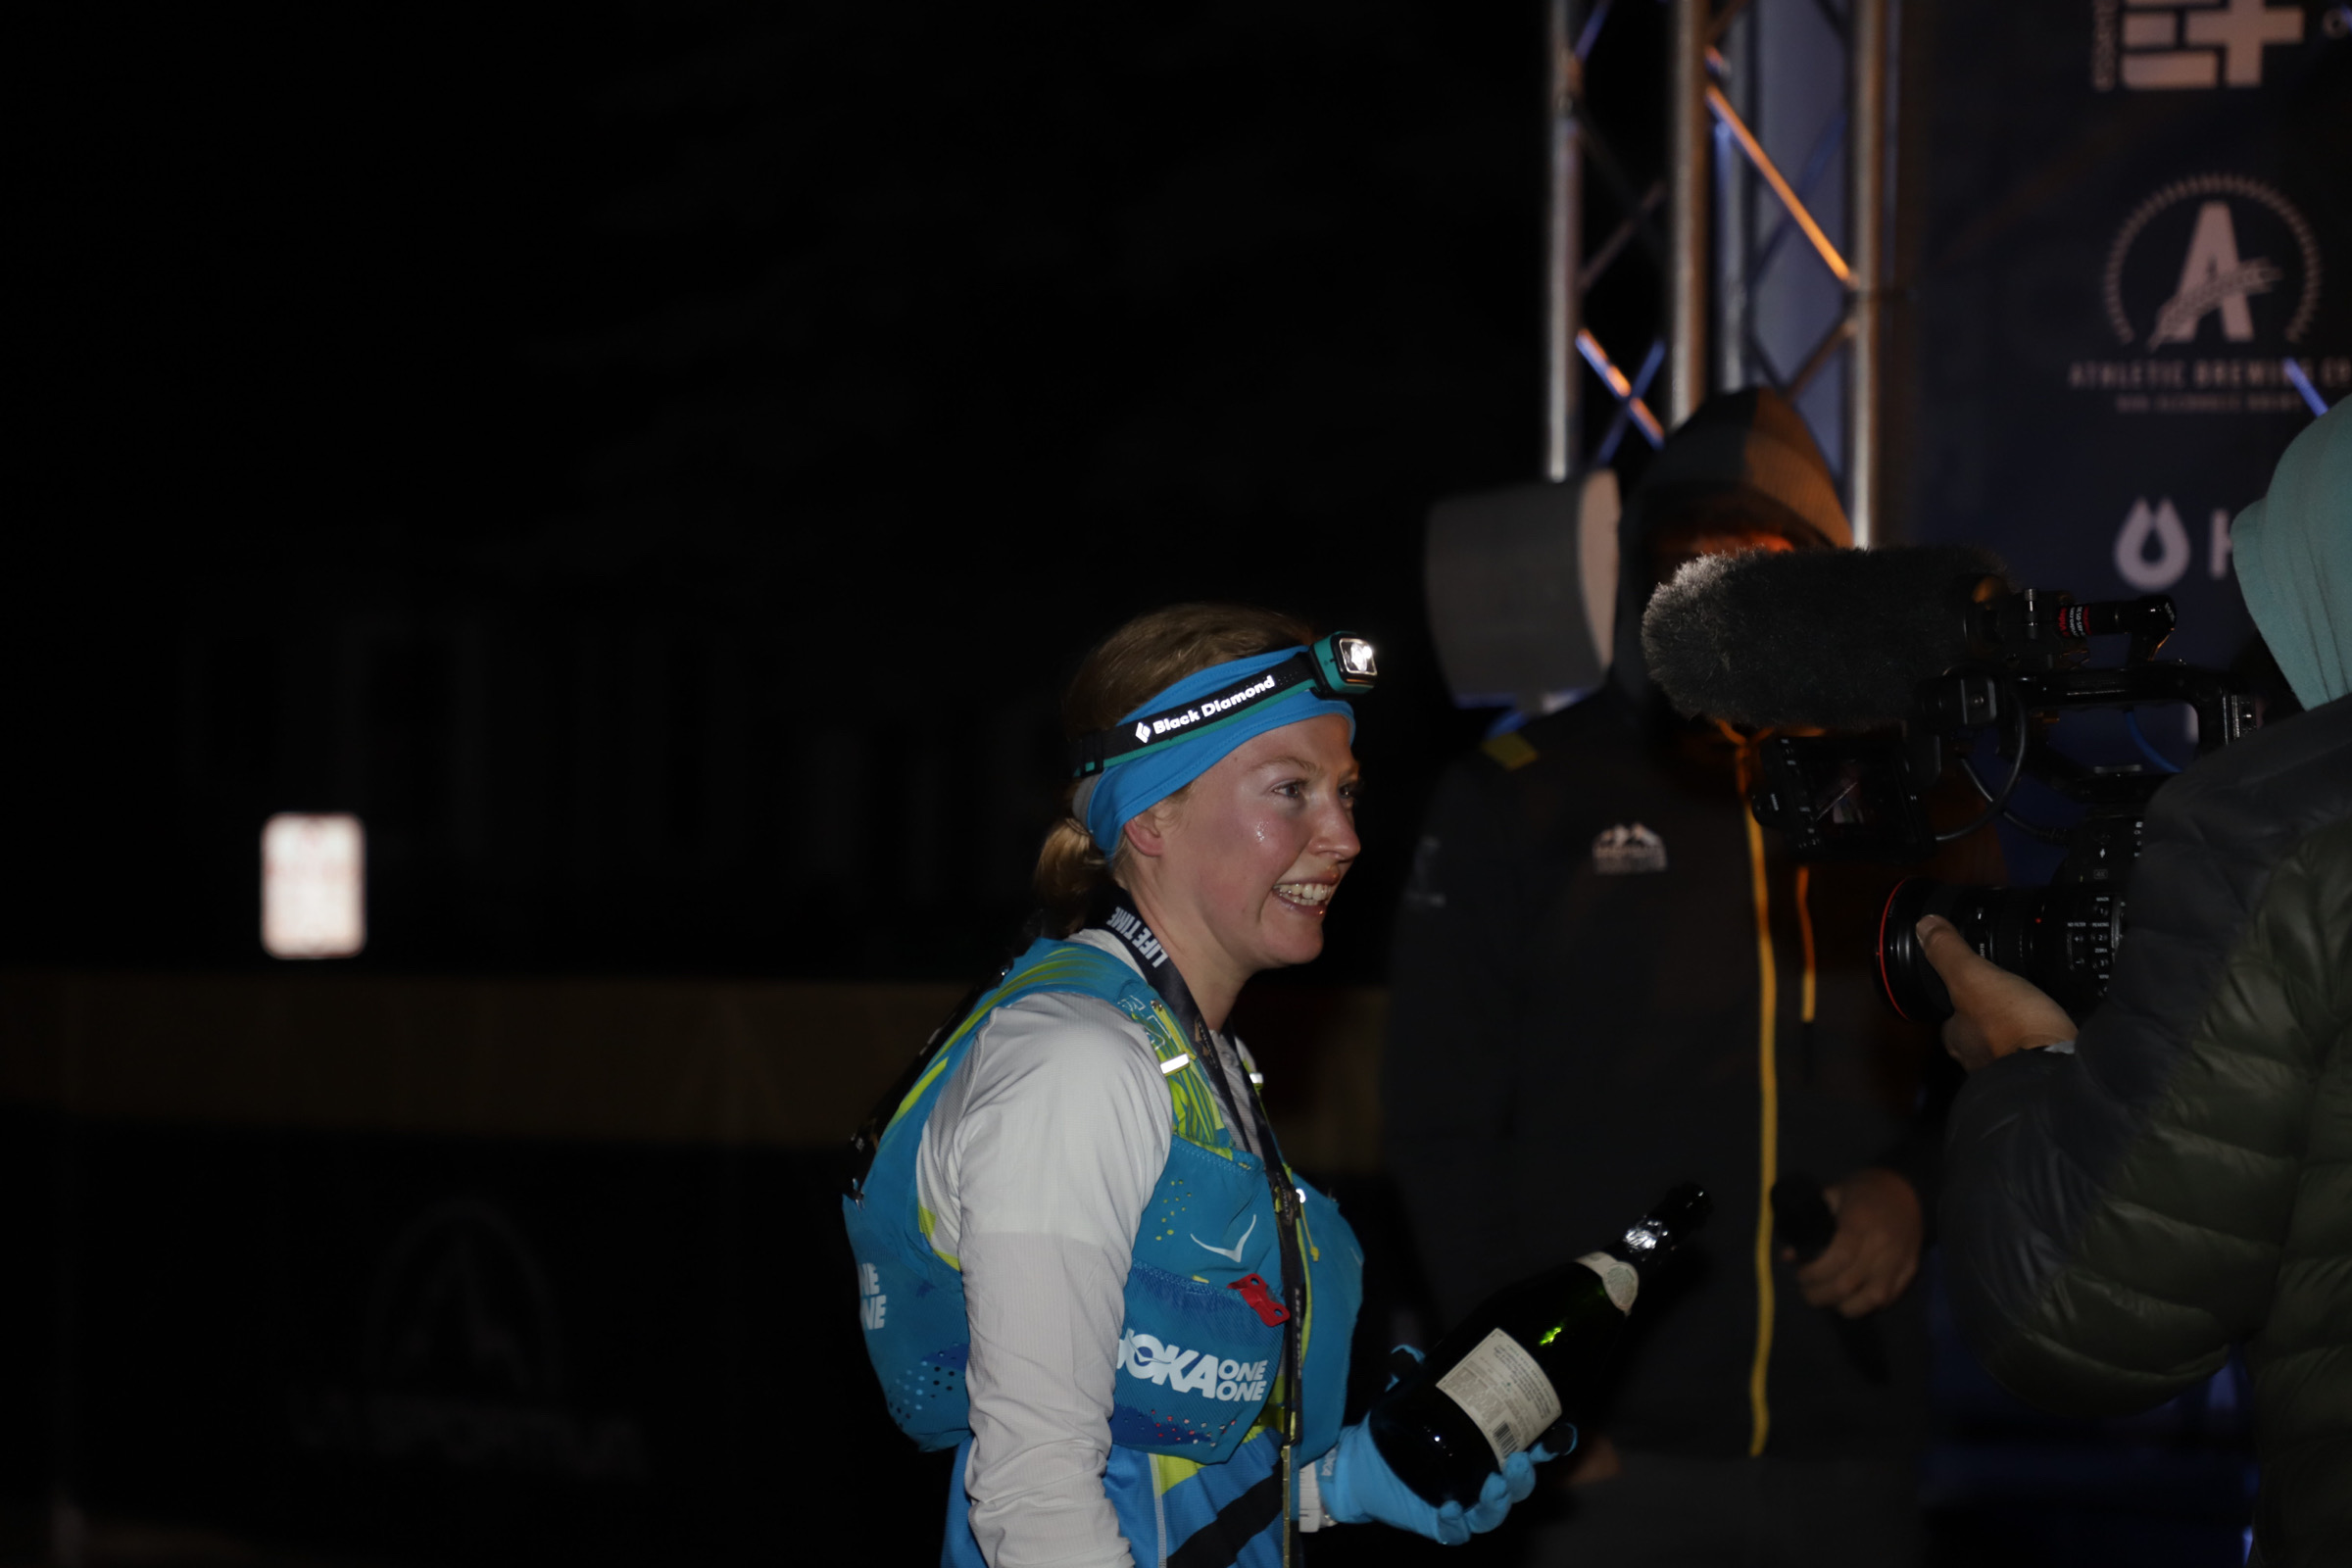 annie hughes celebrating her victory at the leadville trail 100